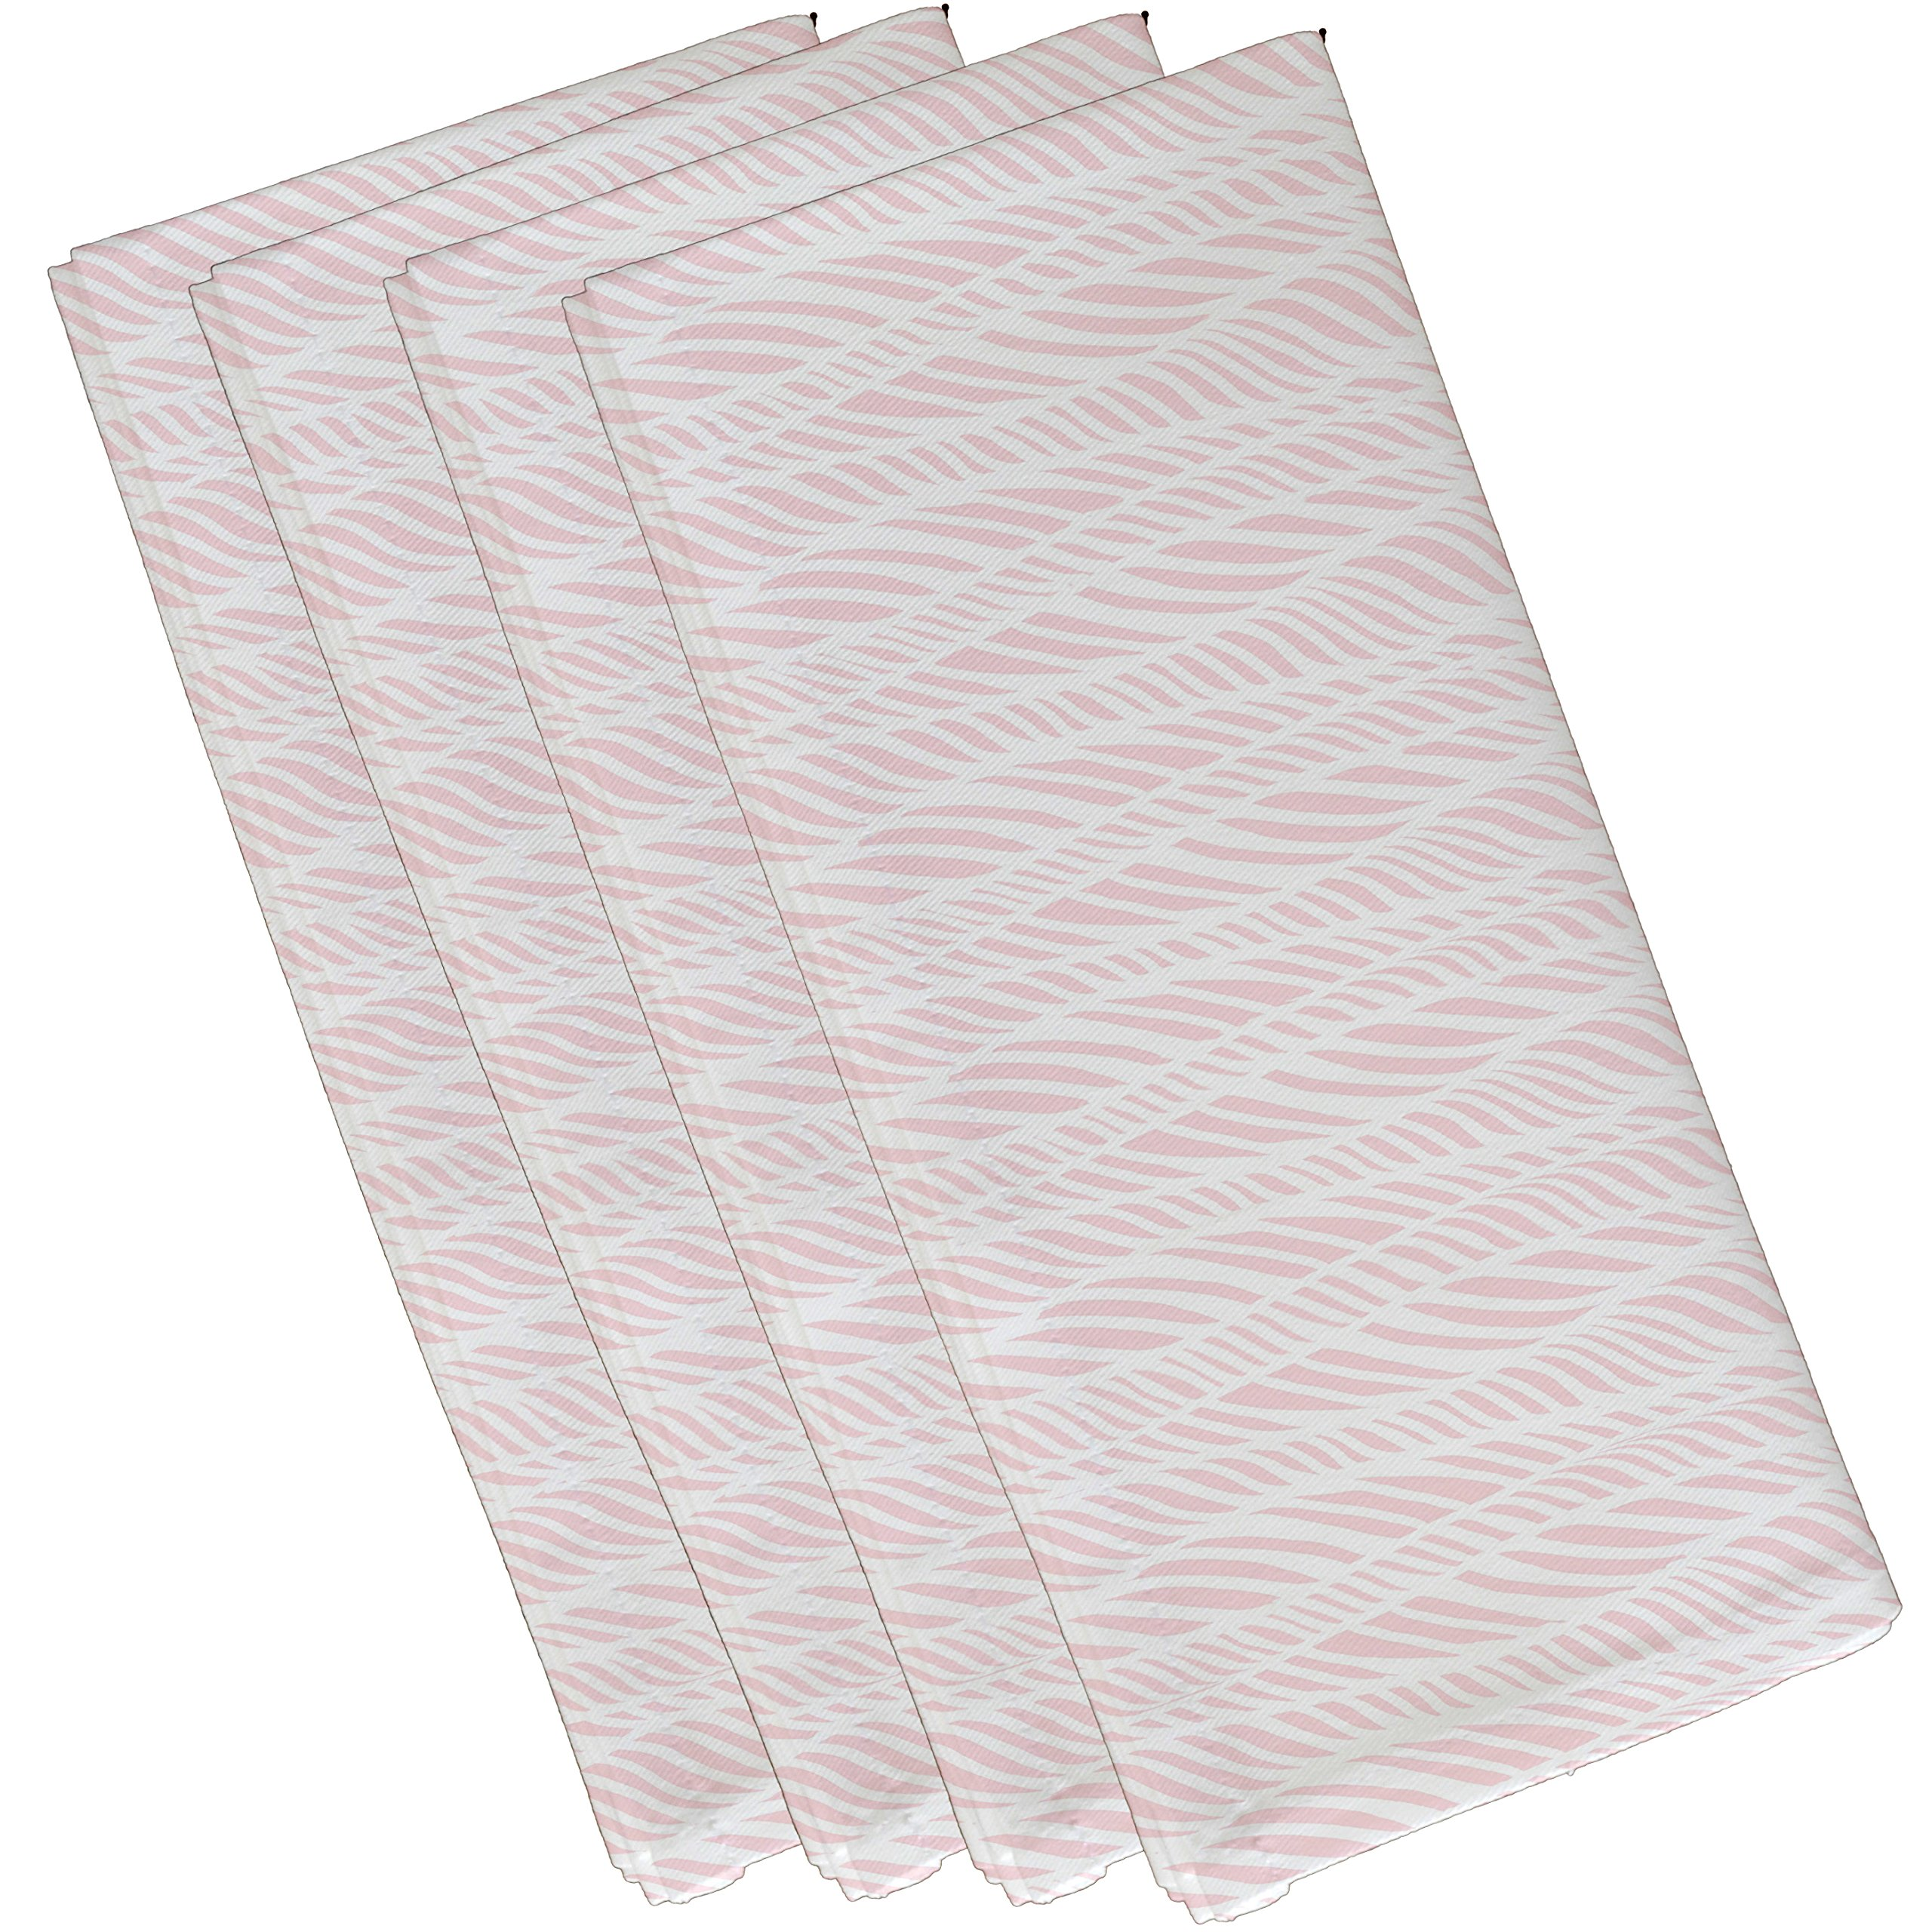 E by design N4G769PK6 Rolling Waves Geometric Print Napkin (Set of 4), 19'' x 19'', Pink